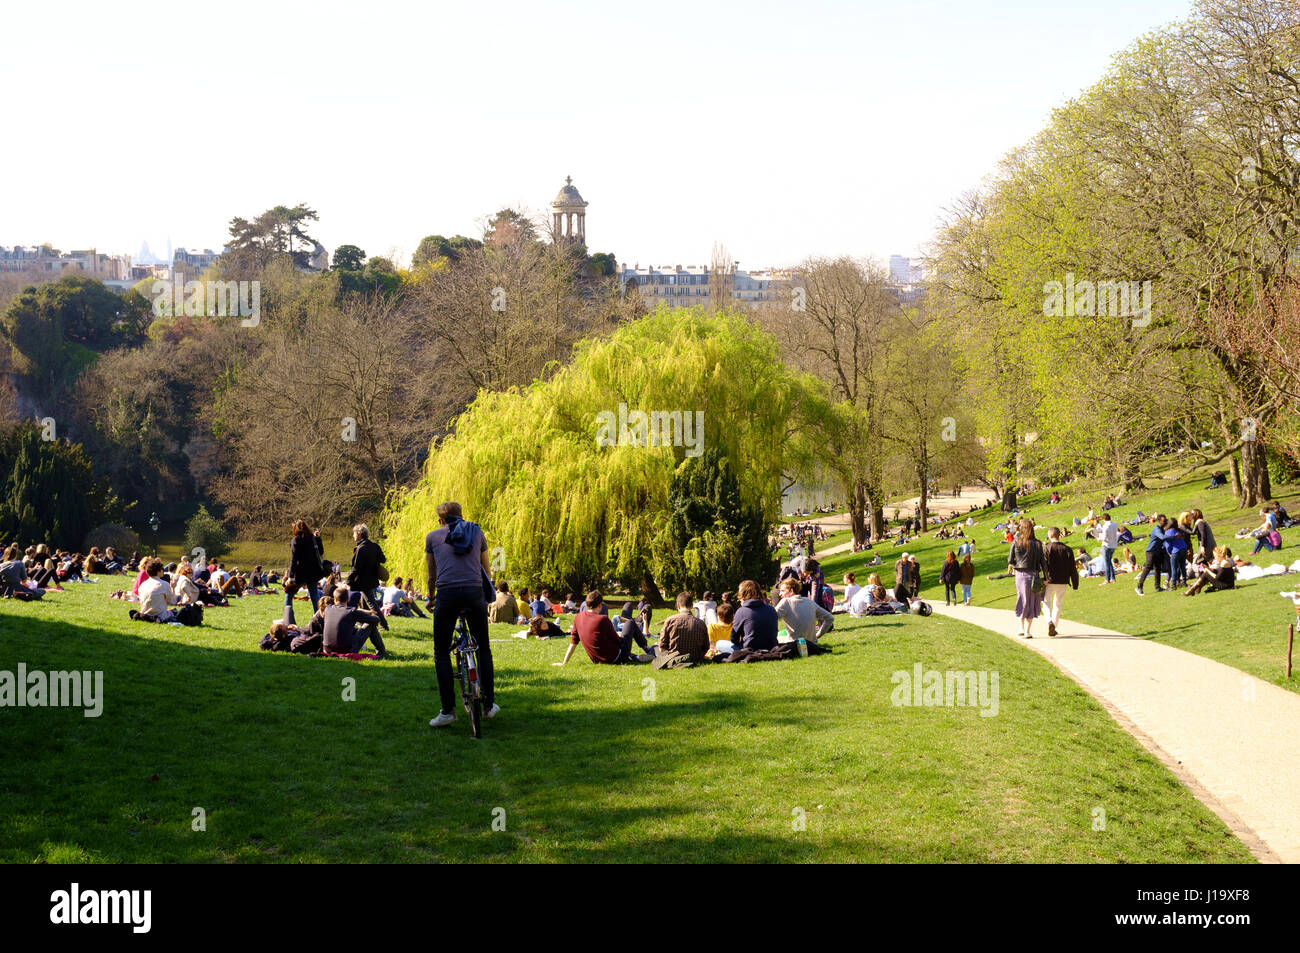 People enjoying the spring sun in the Buttes-Chaumont Park, Paris, France - Stock Image